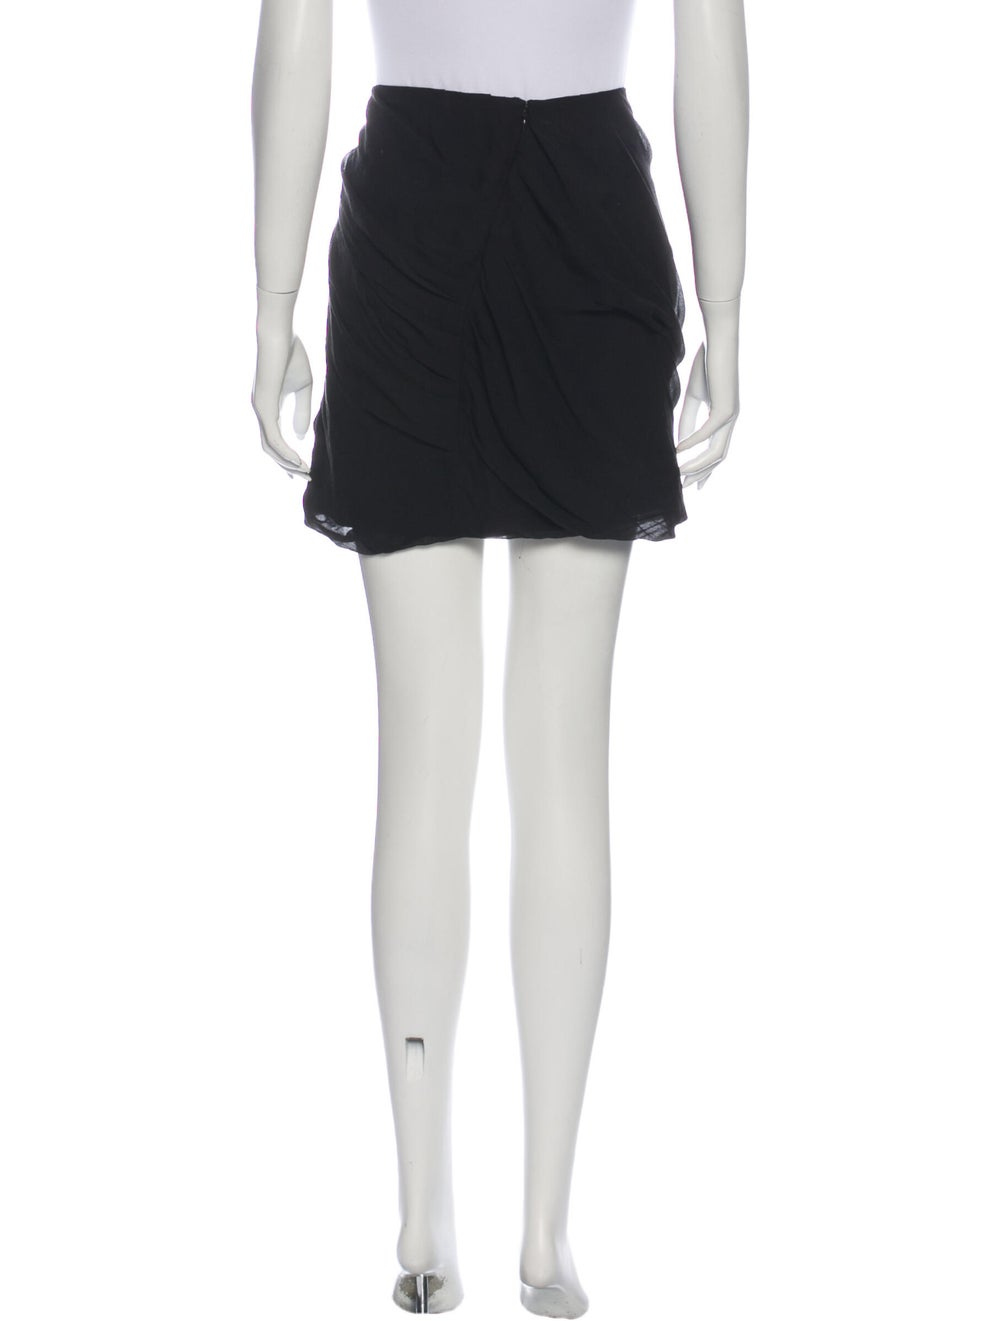 Diane von Furstenberg Silk Mini Skirt Black - image 3